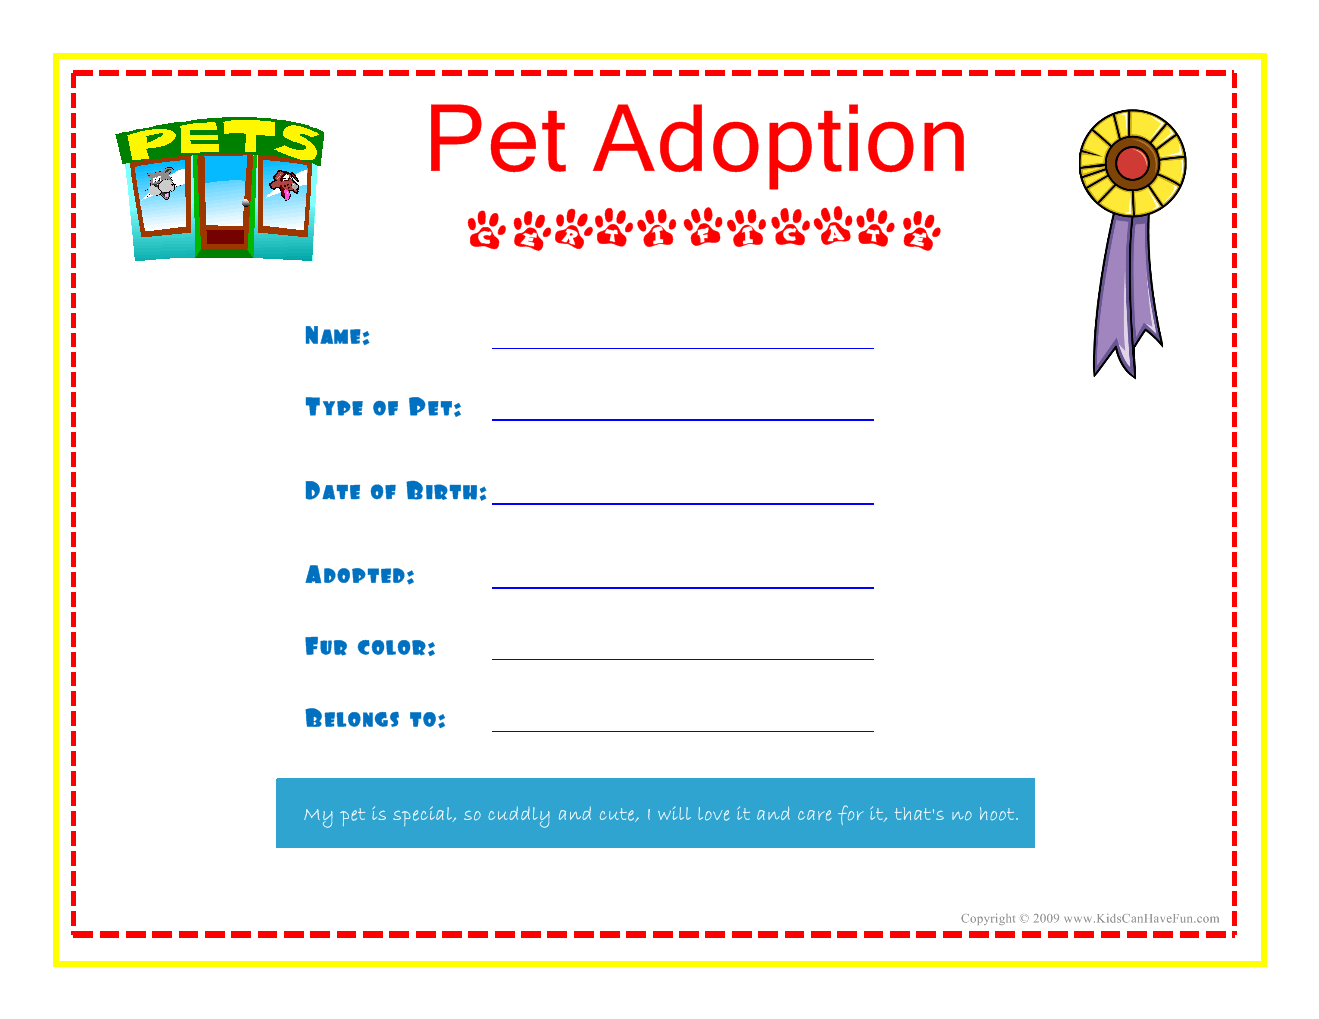 Pet Adoption Certificate For The Kids To Fill Out About Their Pet